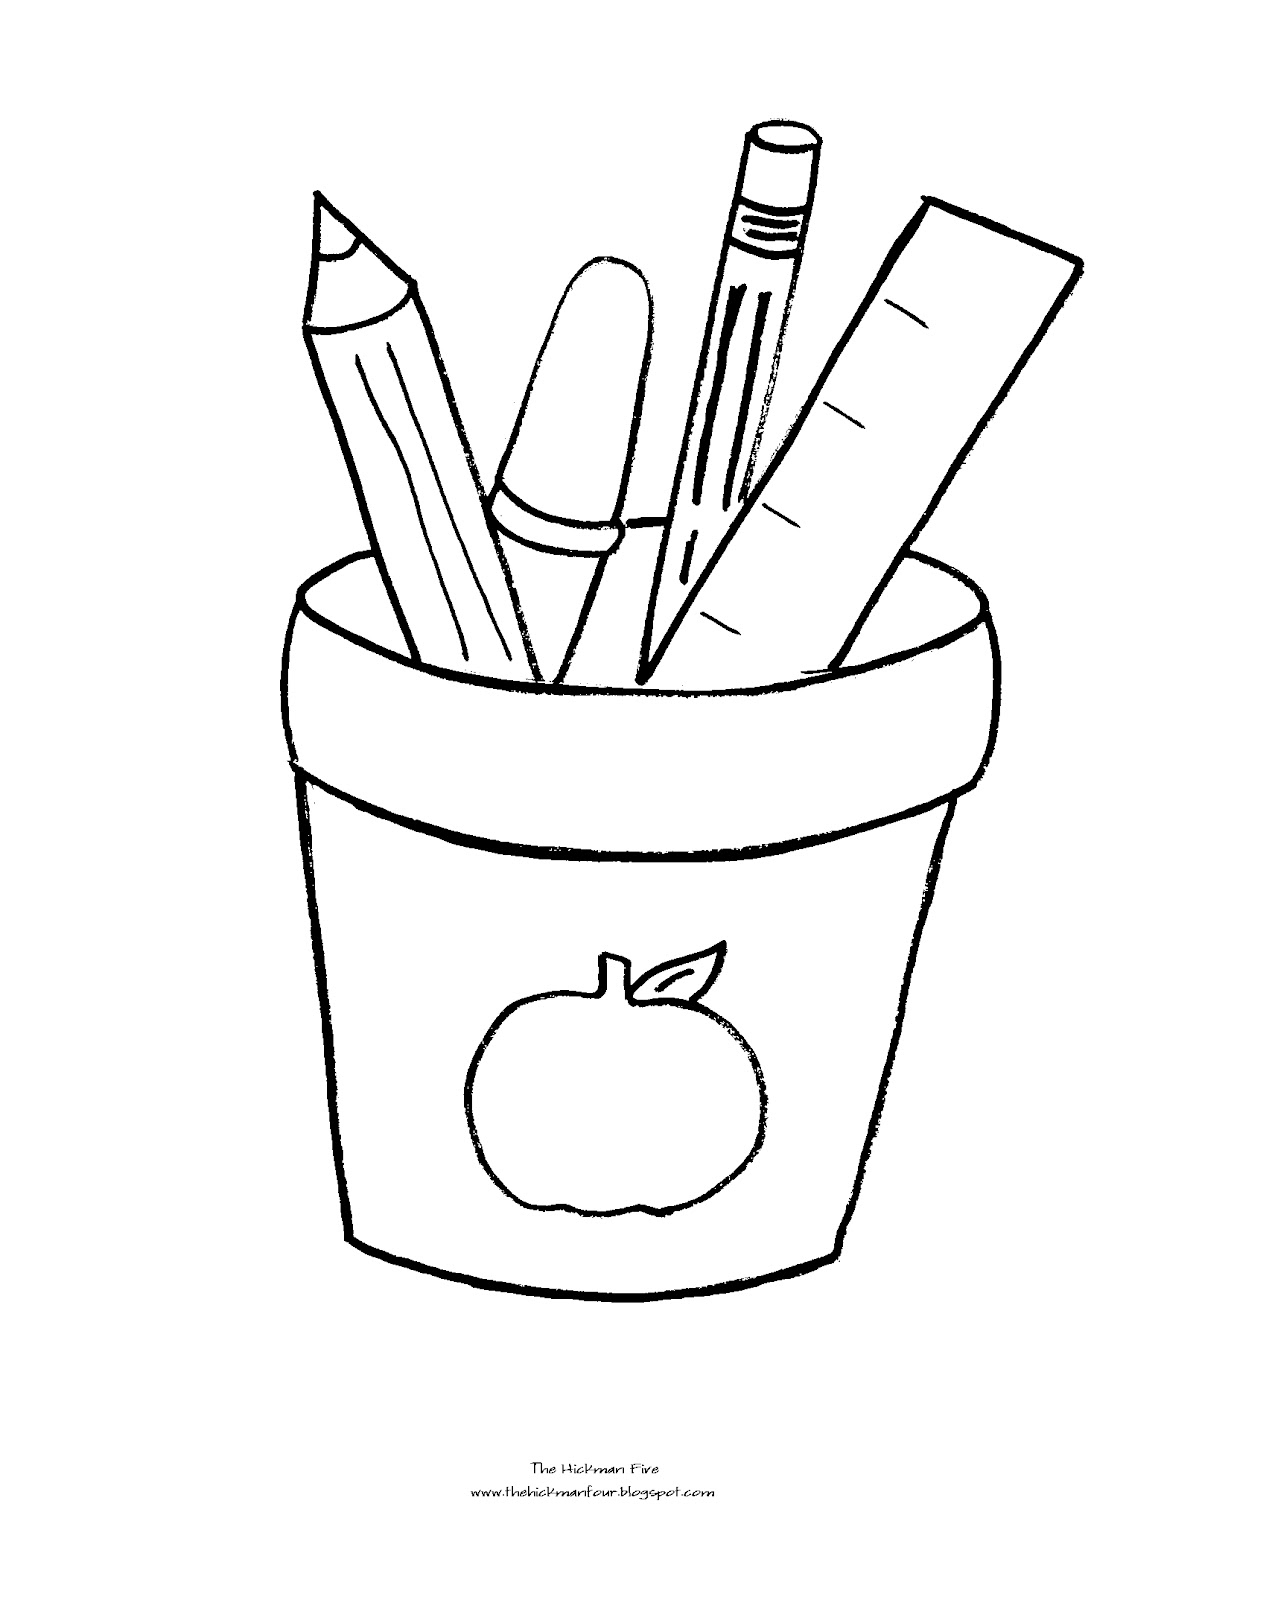 coloring school supplies school supplies coloring pages black and white free supplies school coloring